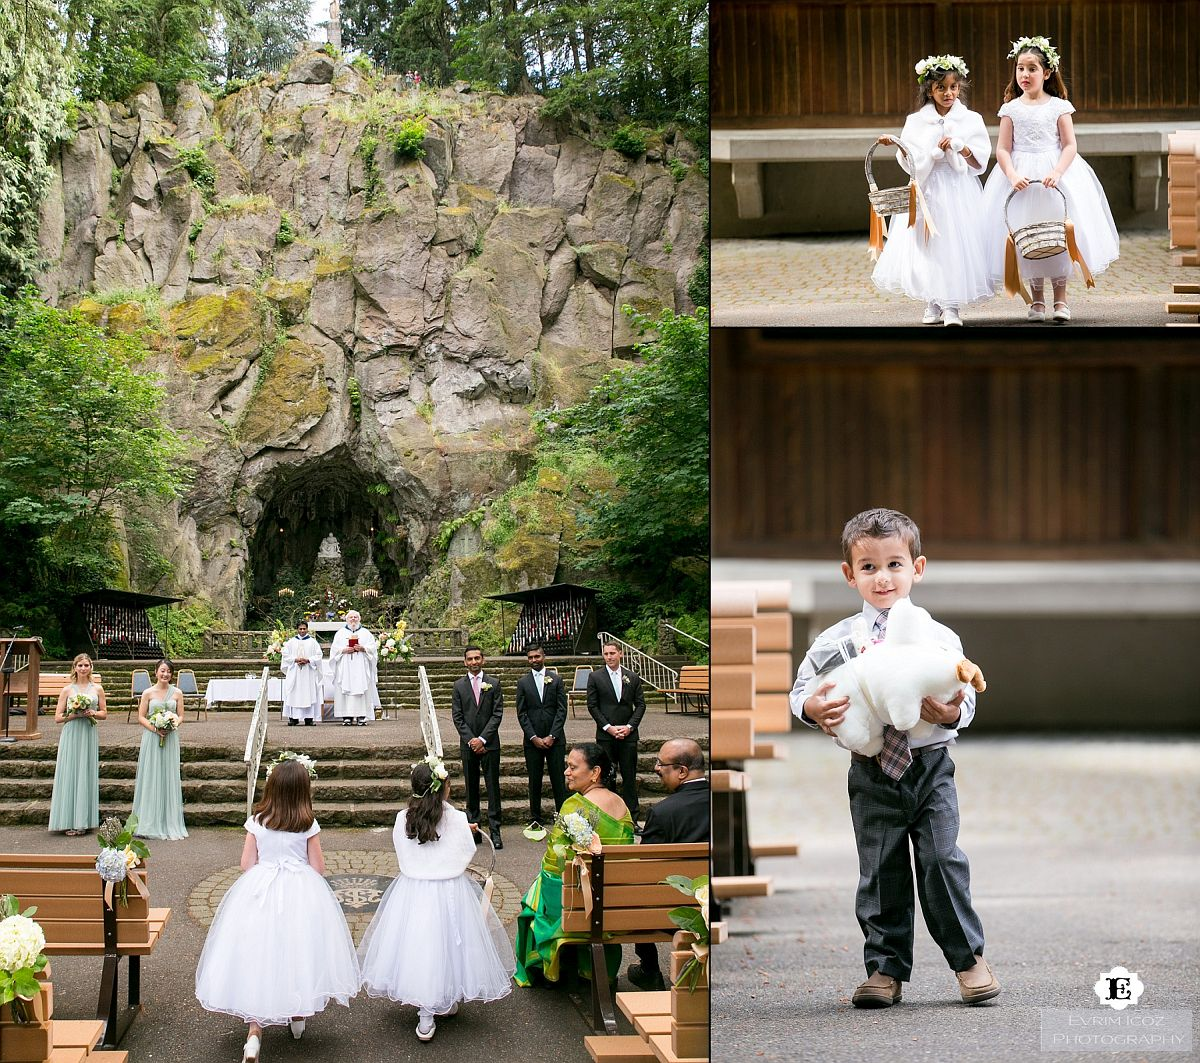 The Grotto Wedding